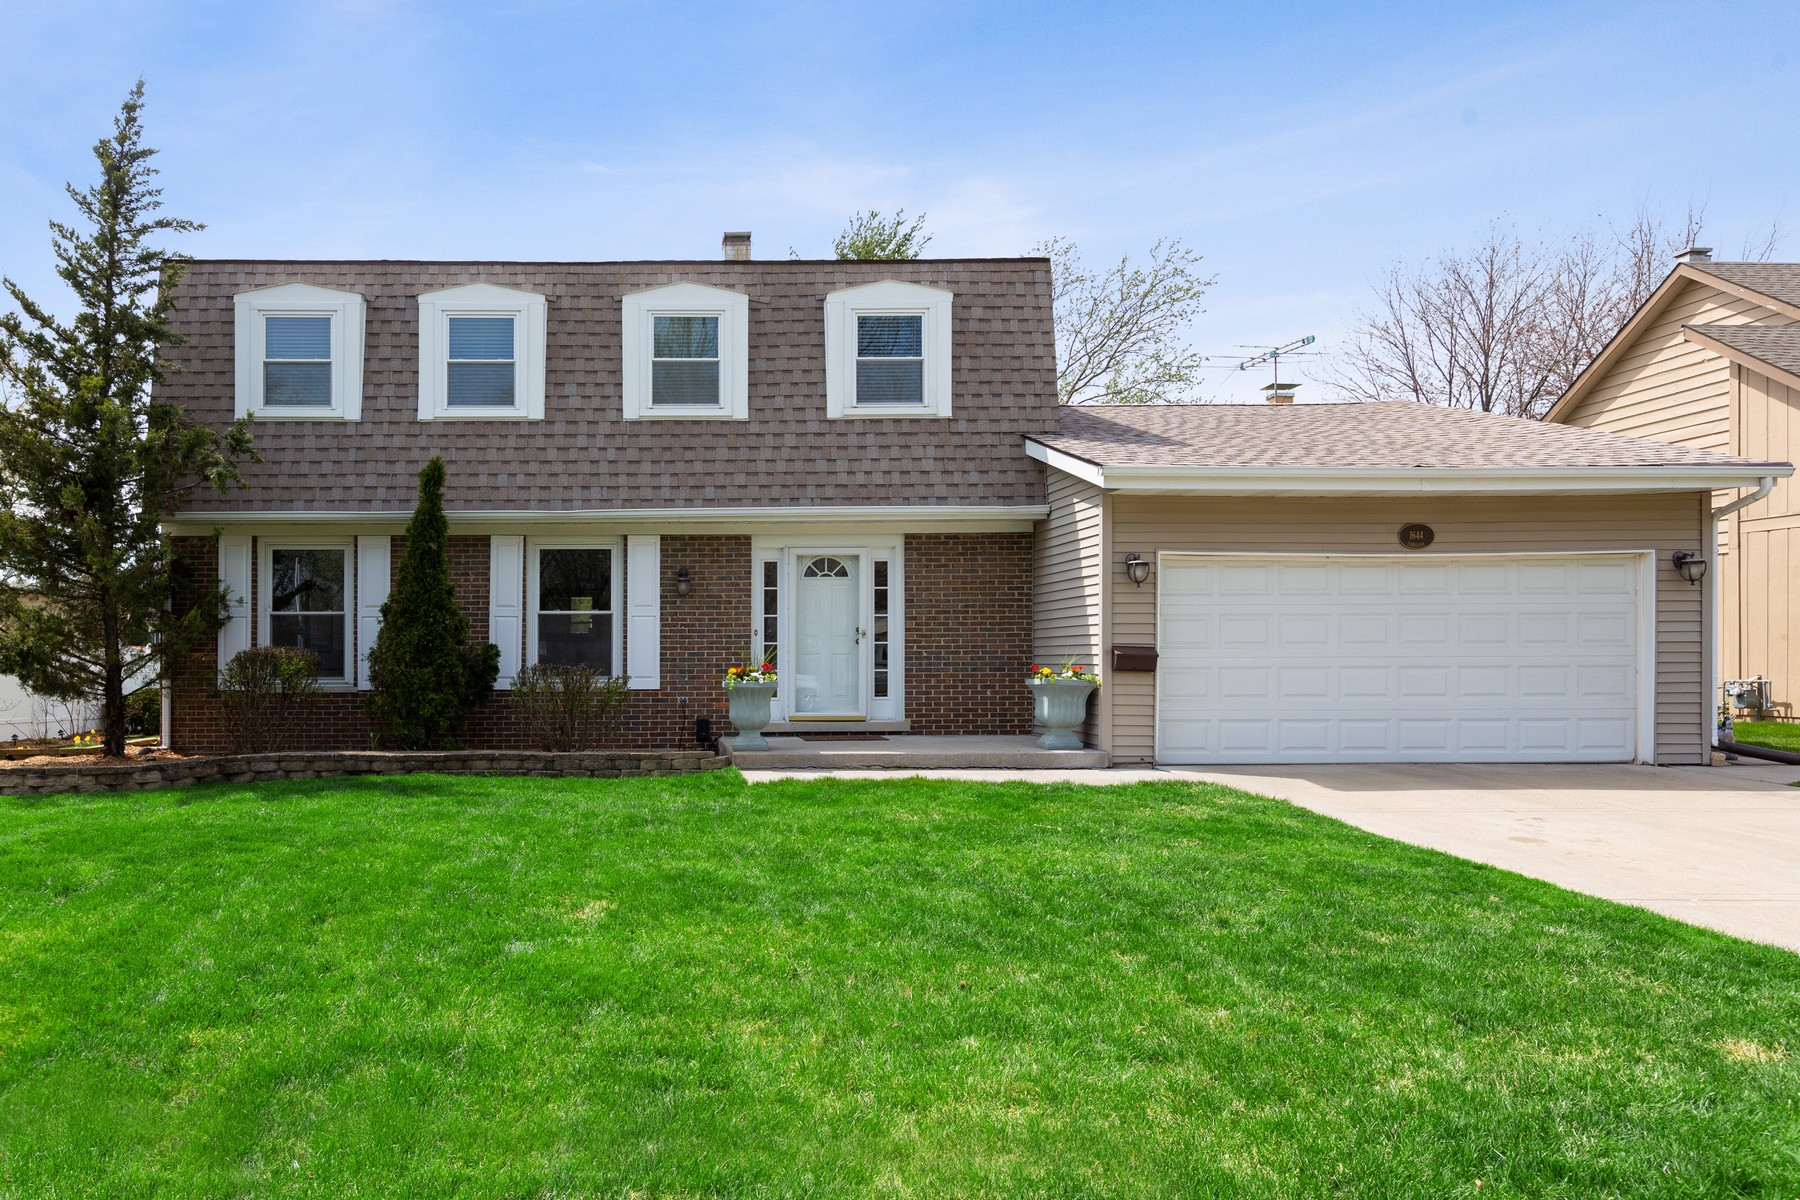 Single Family Home for Active at Everything A Family Could Wish For! 1644 S Lorraine Road Wheaton, Illinois 60189 United States